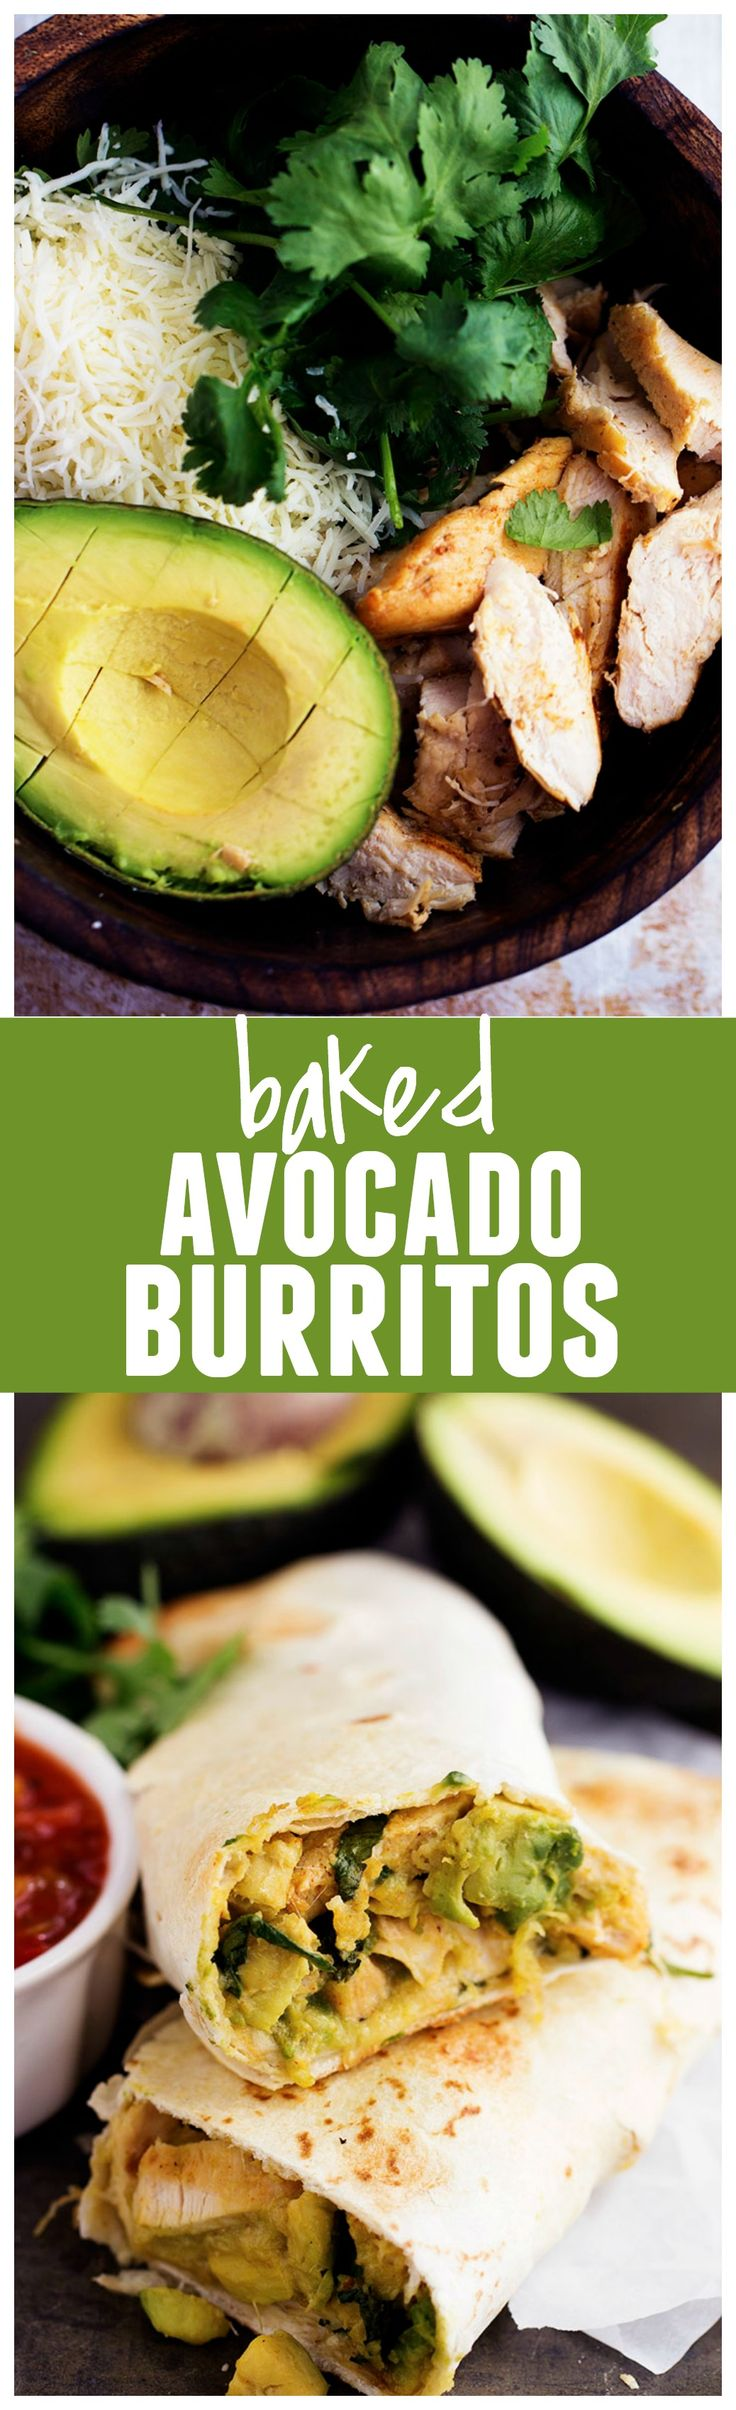 Healthy and easy baked burritos that are stuffed with fresh avocados, cilantro, spices and cheese. A deliciously filled burrito that you won't have to feel guilty about!